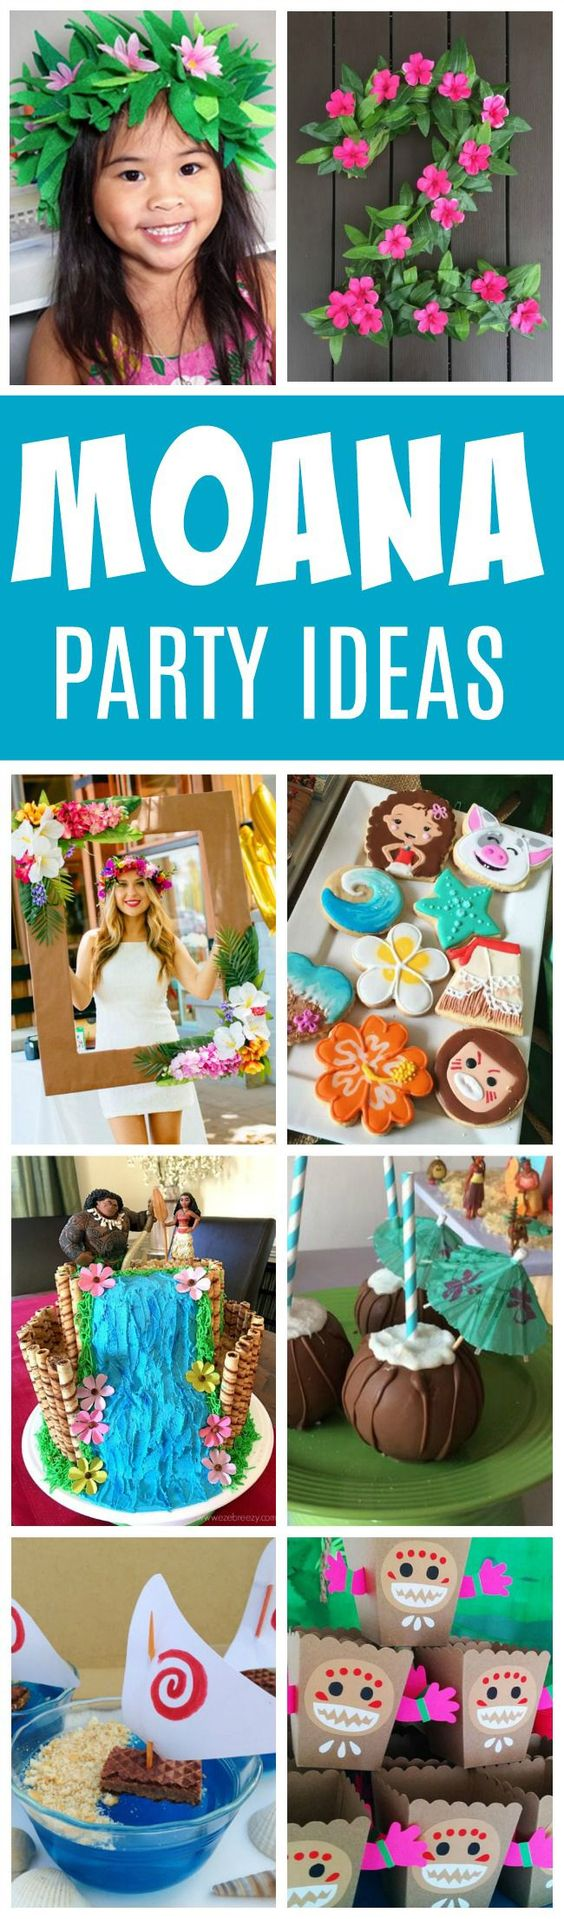 27 Disney Moana Birthday Party Ideas - Pretty My Party